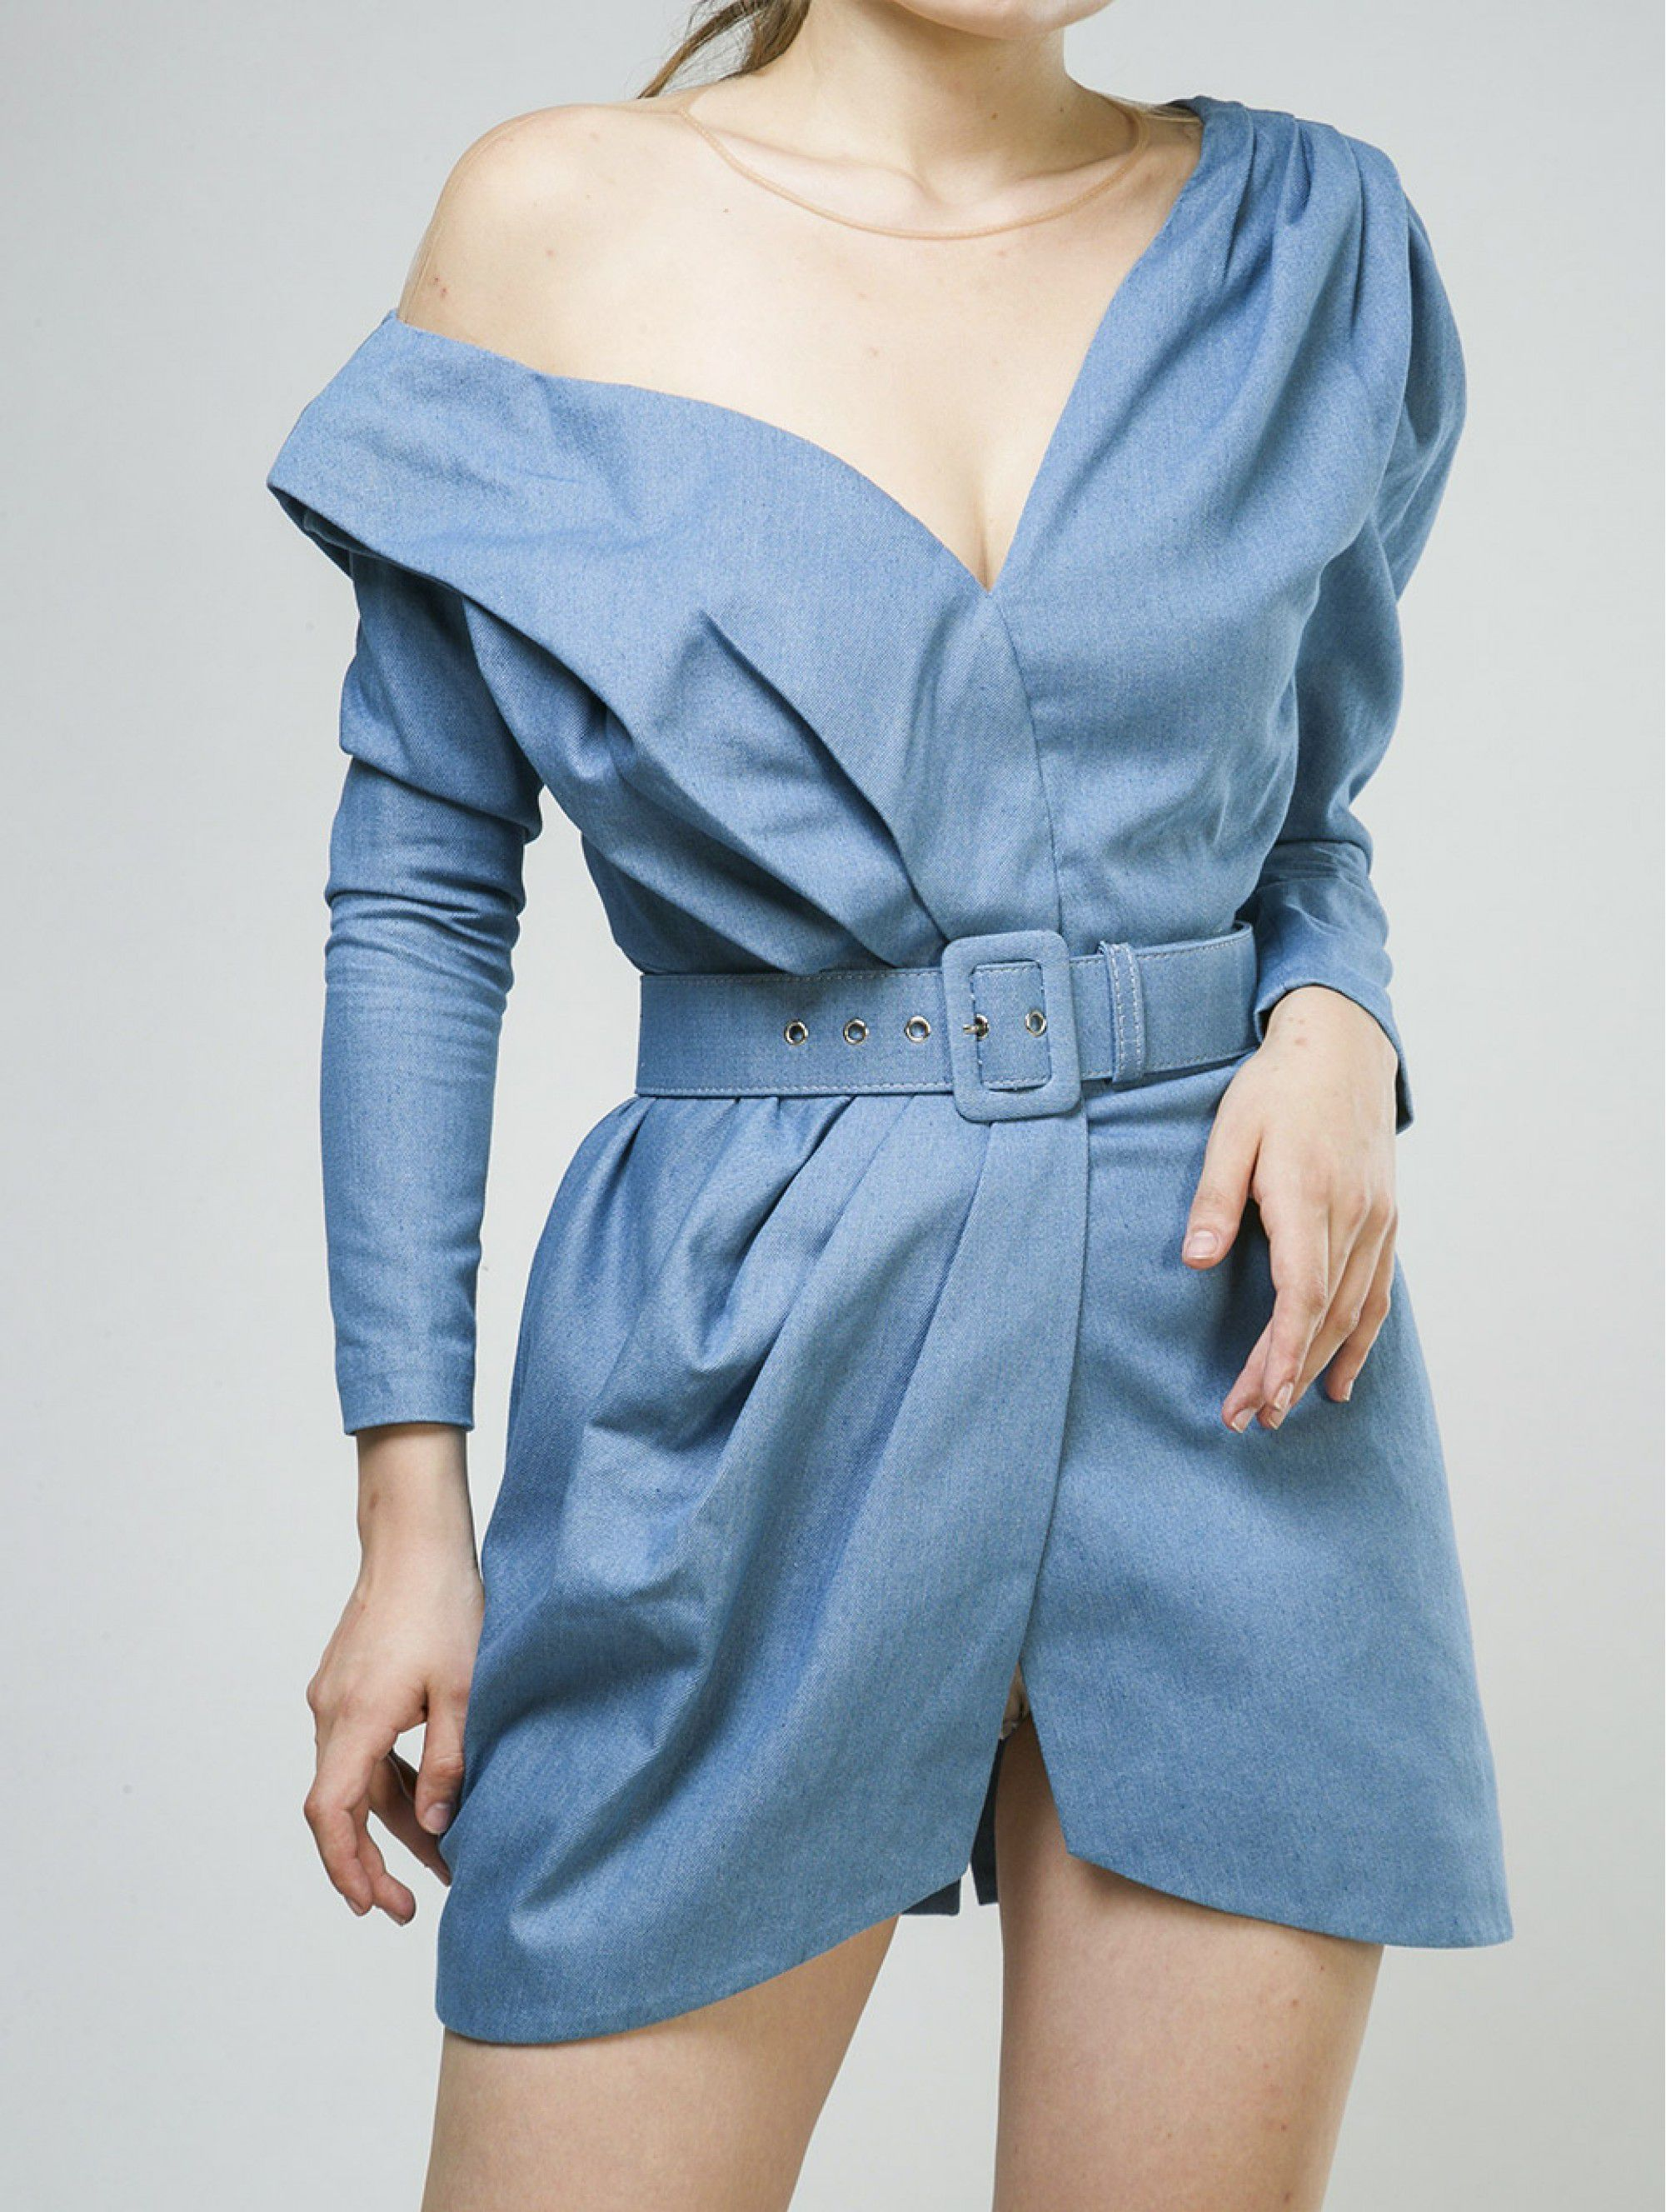 Alena Akhmadullina Belted Denim Dress